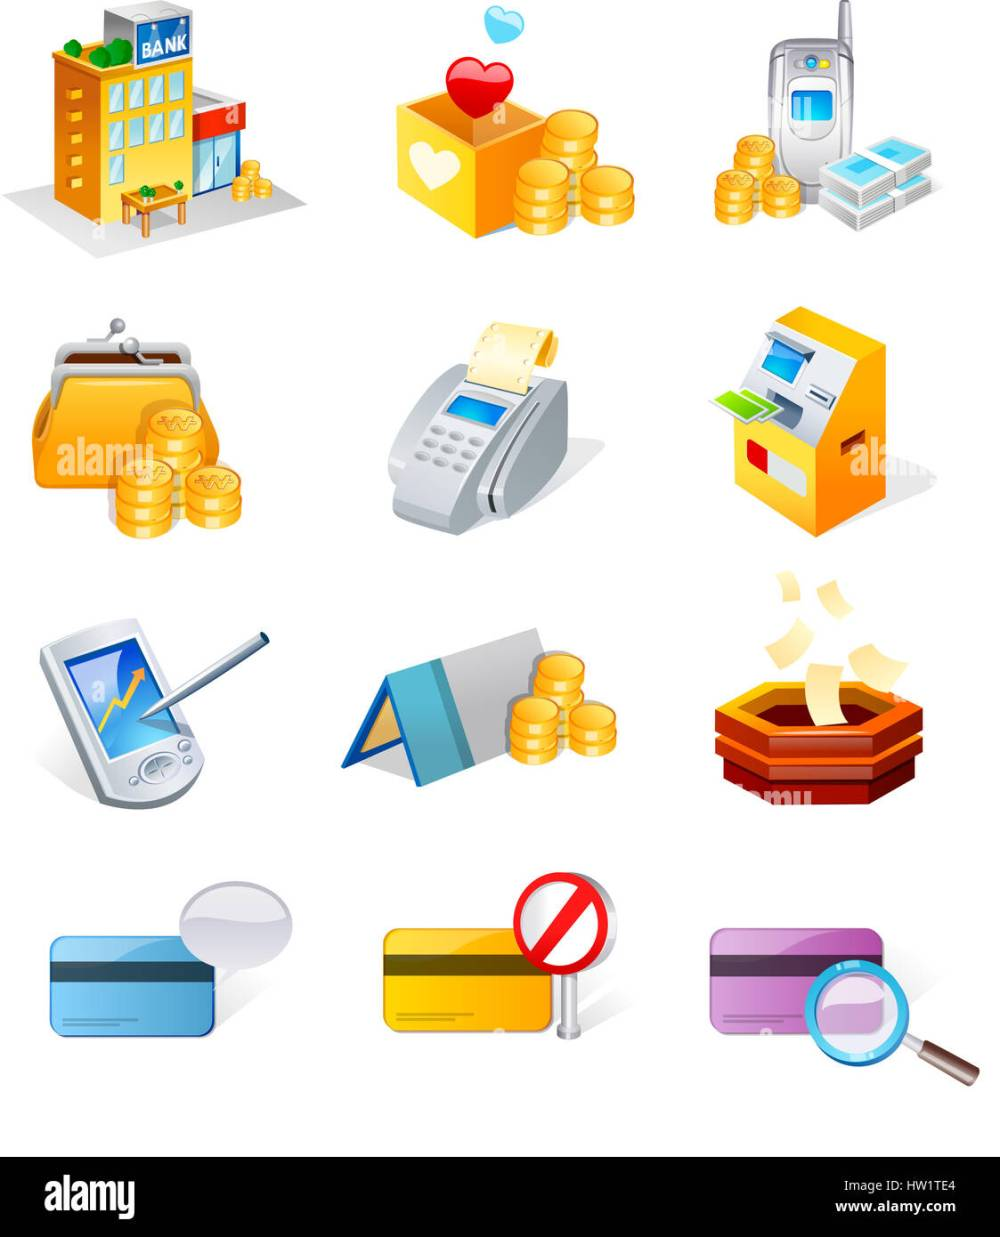 medium resolution of adding machine tape atm bank bank book box clip art clipart coin color colour color image communication computer graphics computer icon connection credit